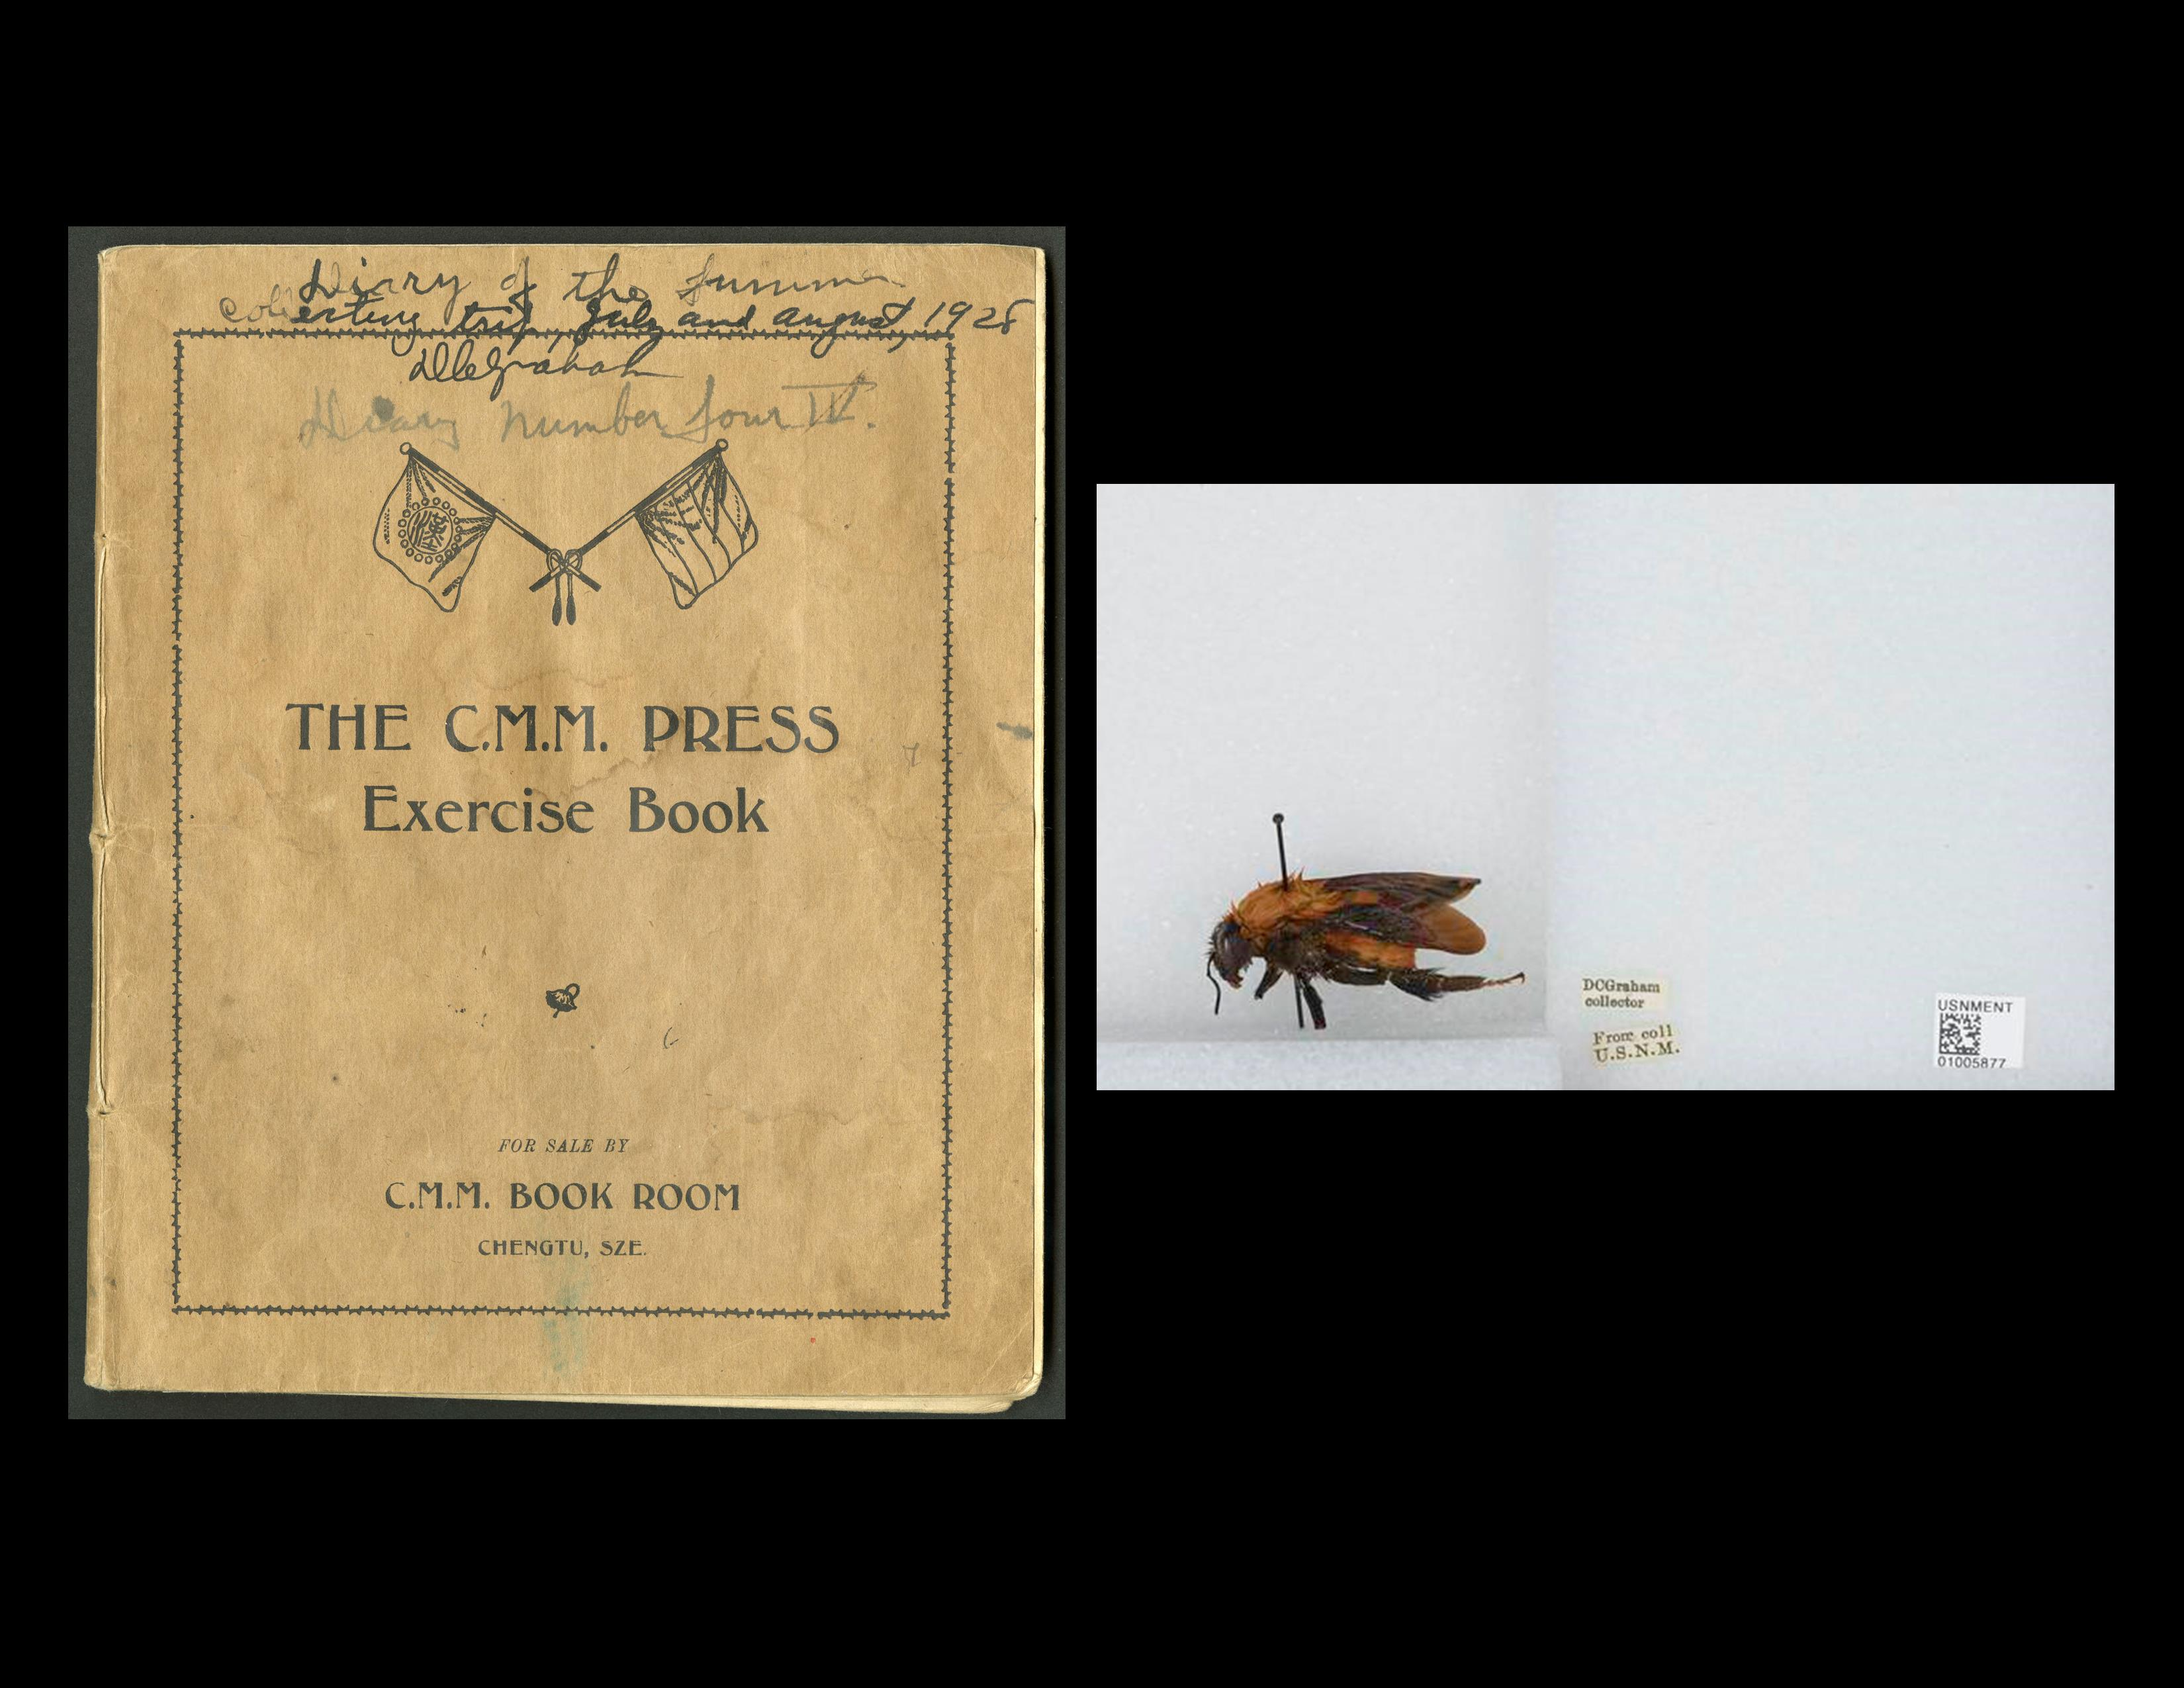 On the left: David Crockett Graham diary documenting his field work in China, Smithsonian Institutio